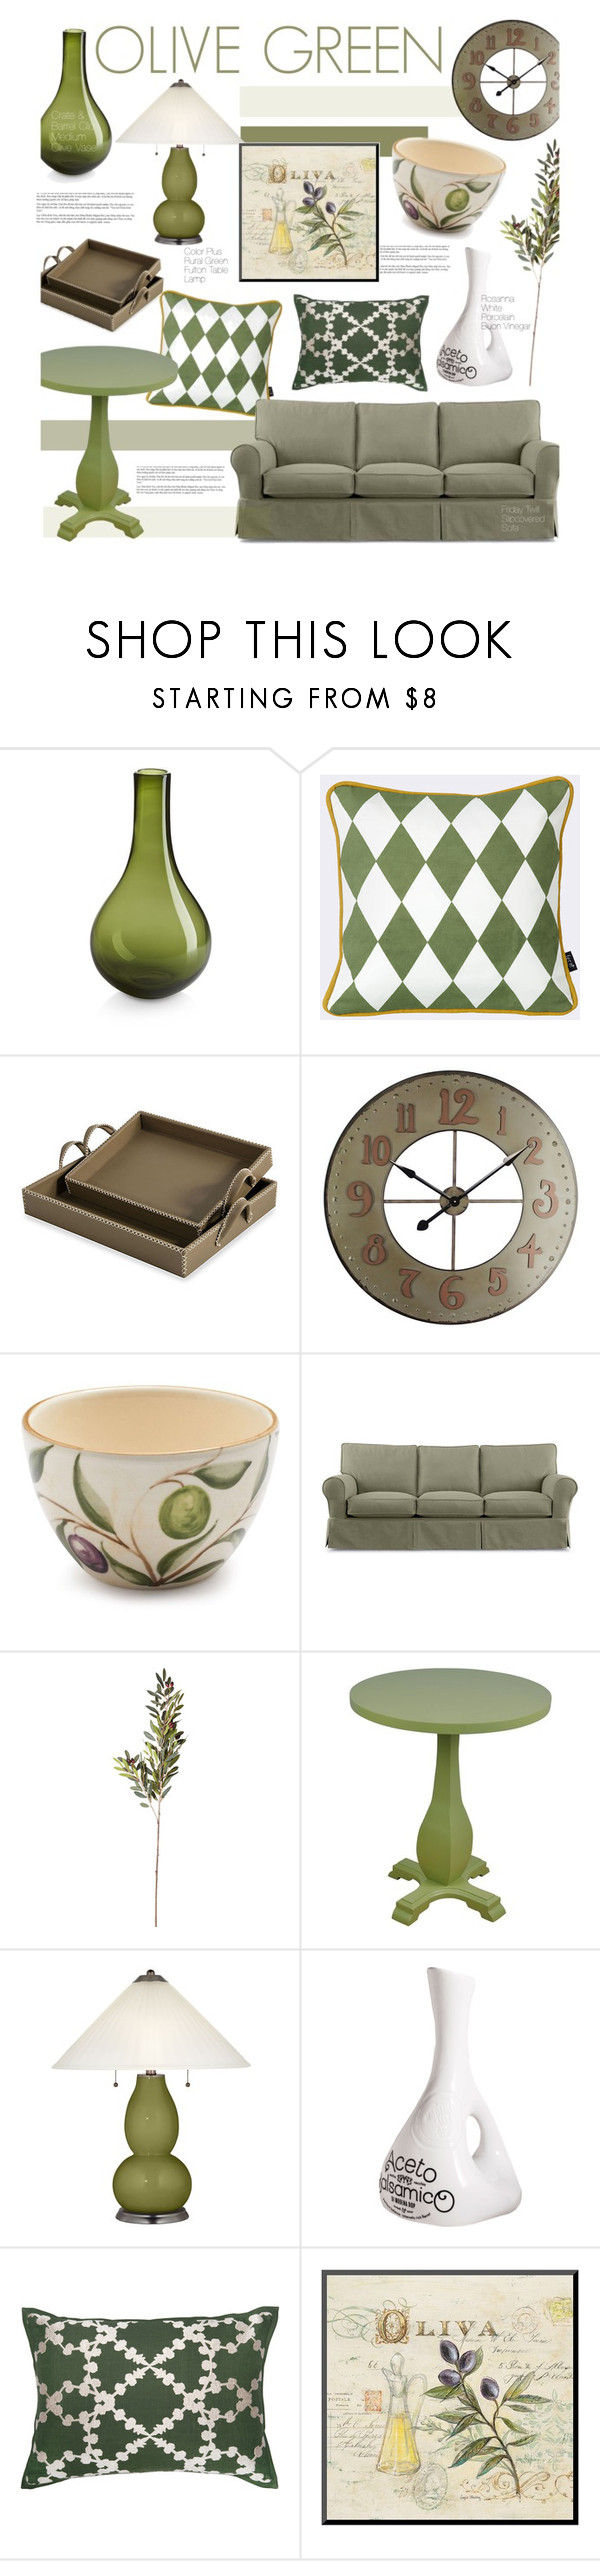 """""""Olive Green"""" by kusja ❤ liked on Polyvore featuring interior, interiors, interior design, home, home decor, interior decorating, Crate and Barrel, ferm LIVING, Interlude and Universal Lighting and Decor"""